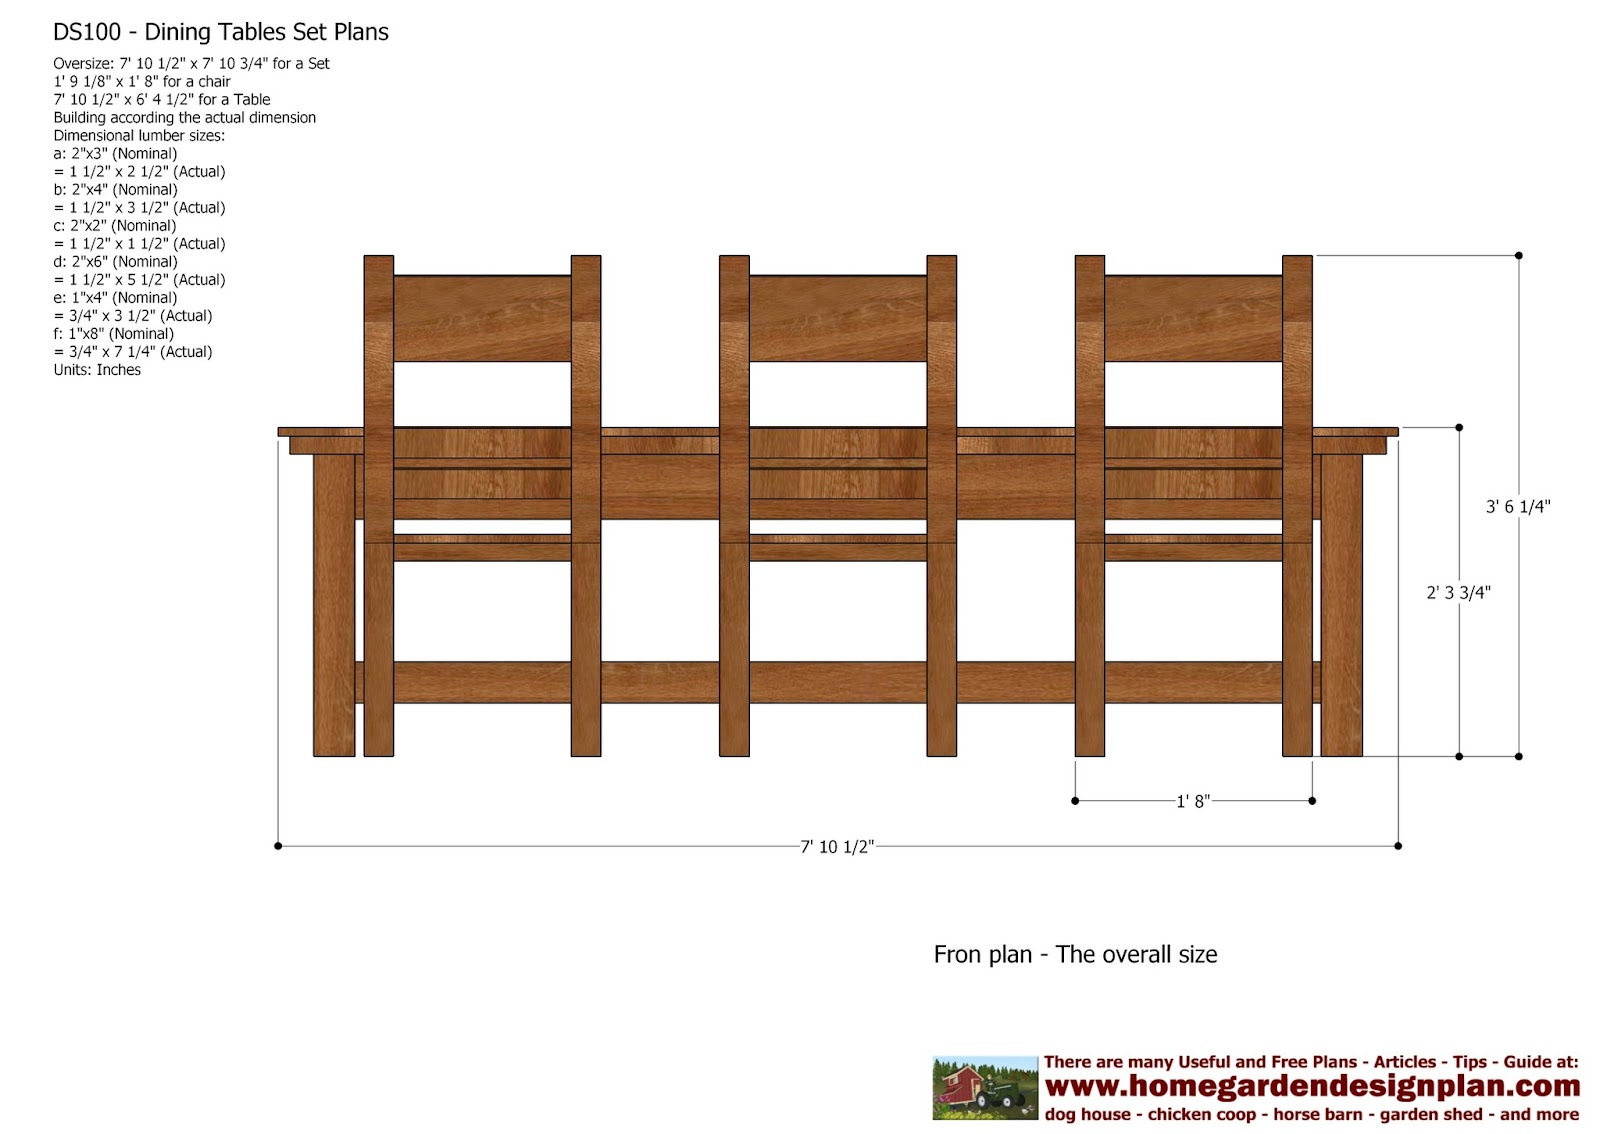 Outdoor Wood Dining Table Plans